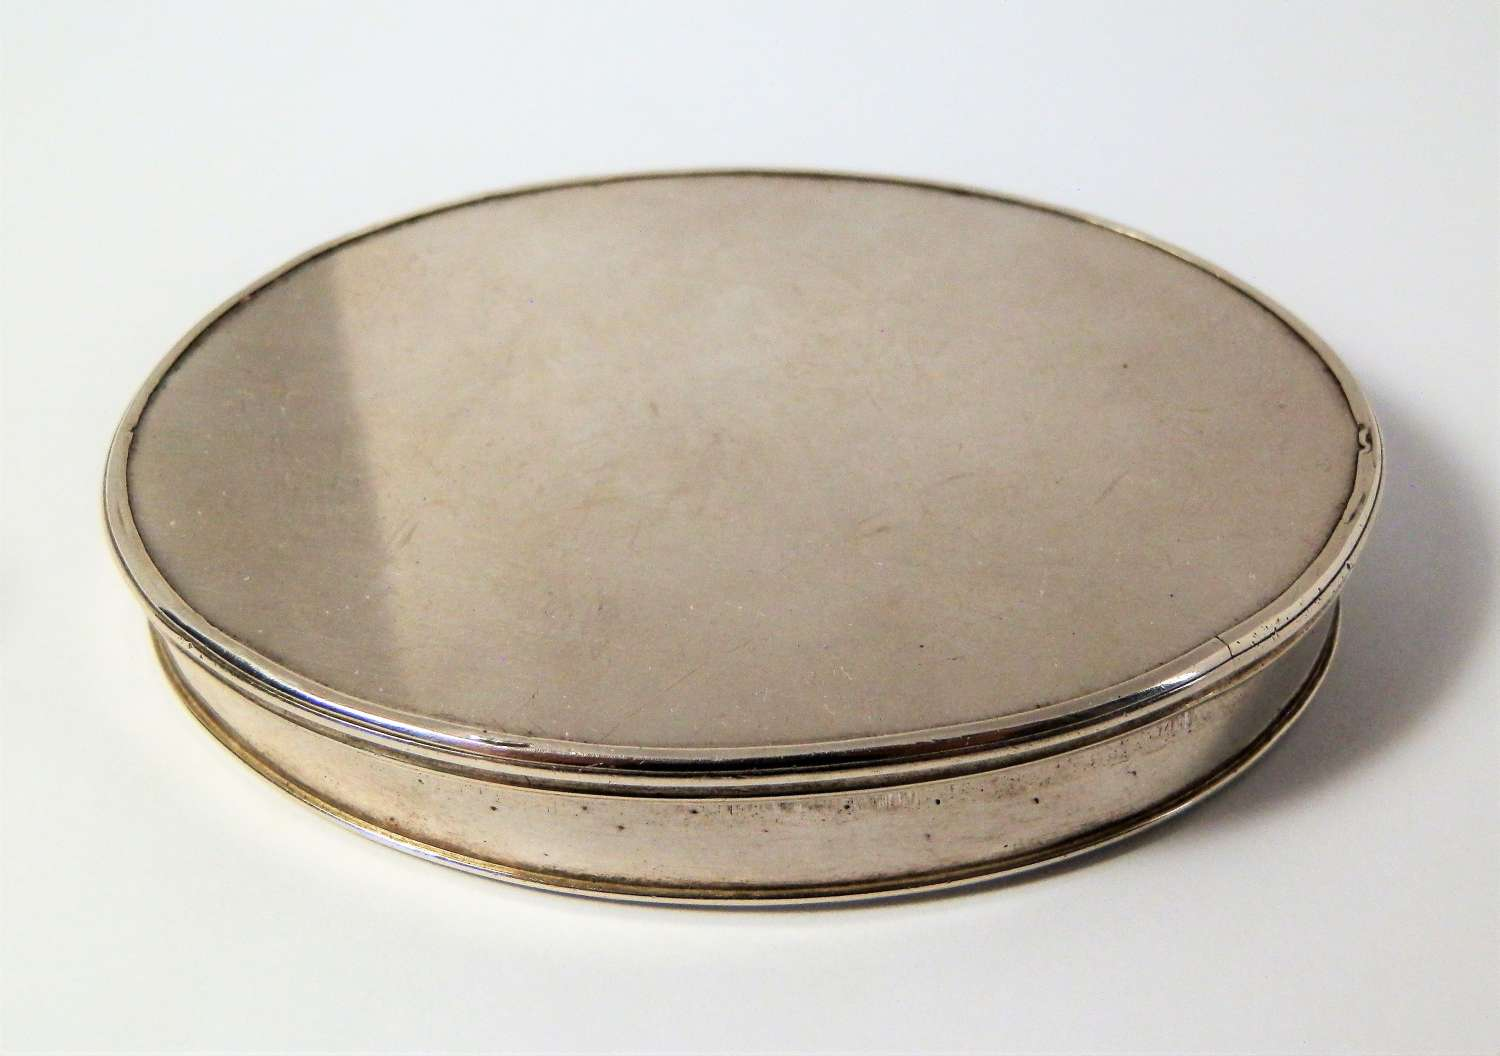 George I silver snuff box, James Overing, London 1716